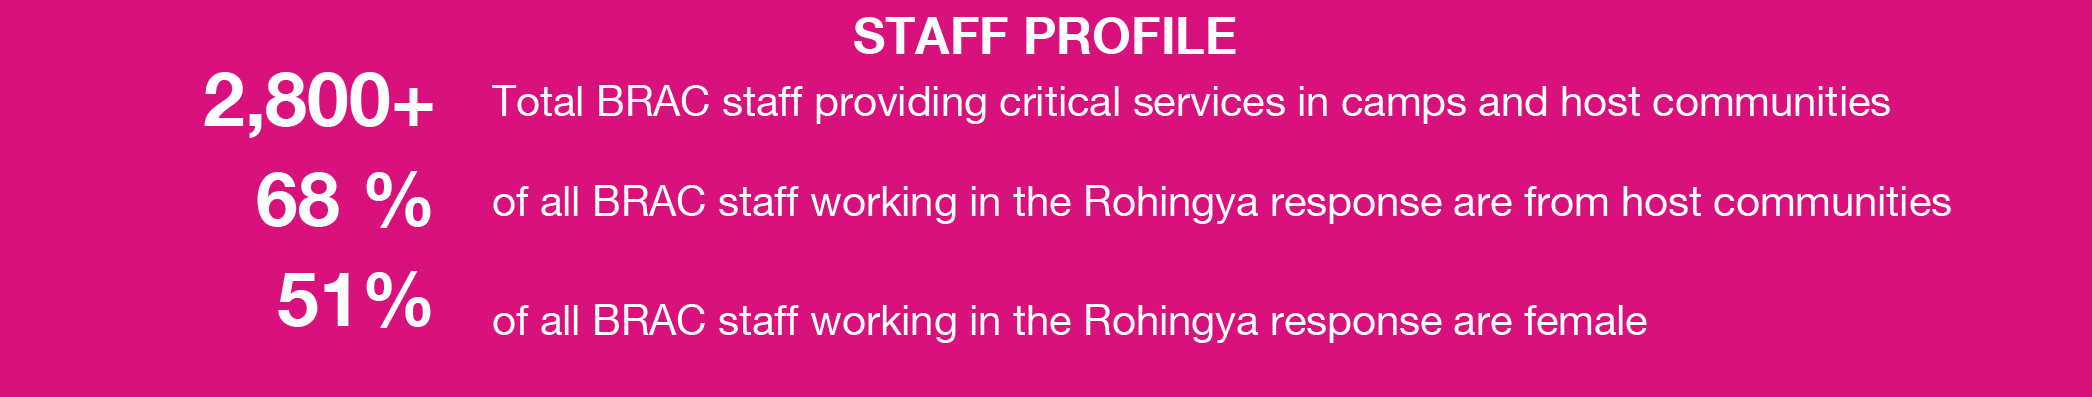 staff-profile-010419